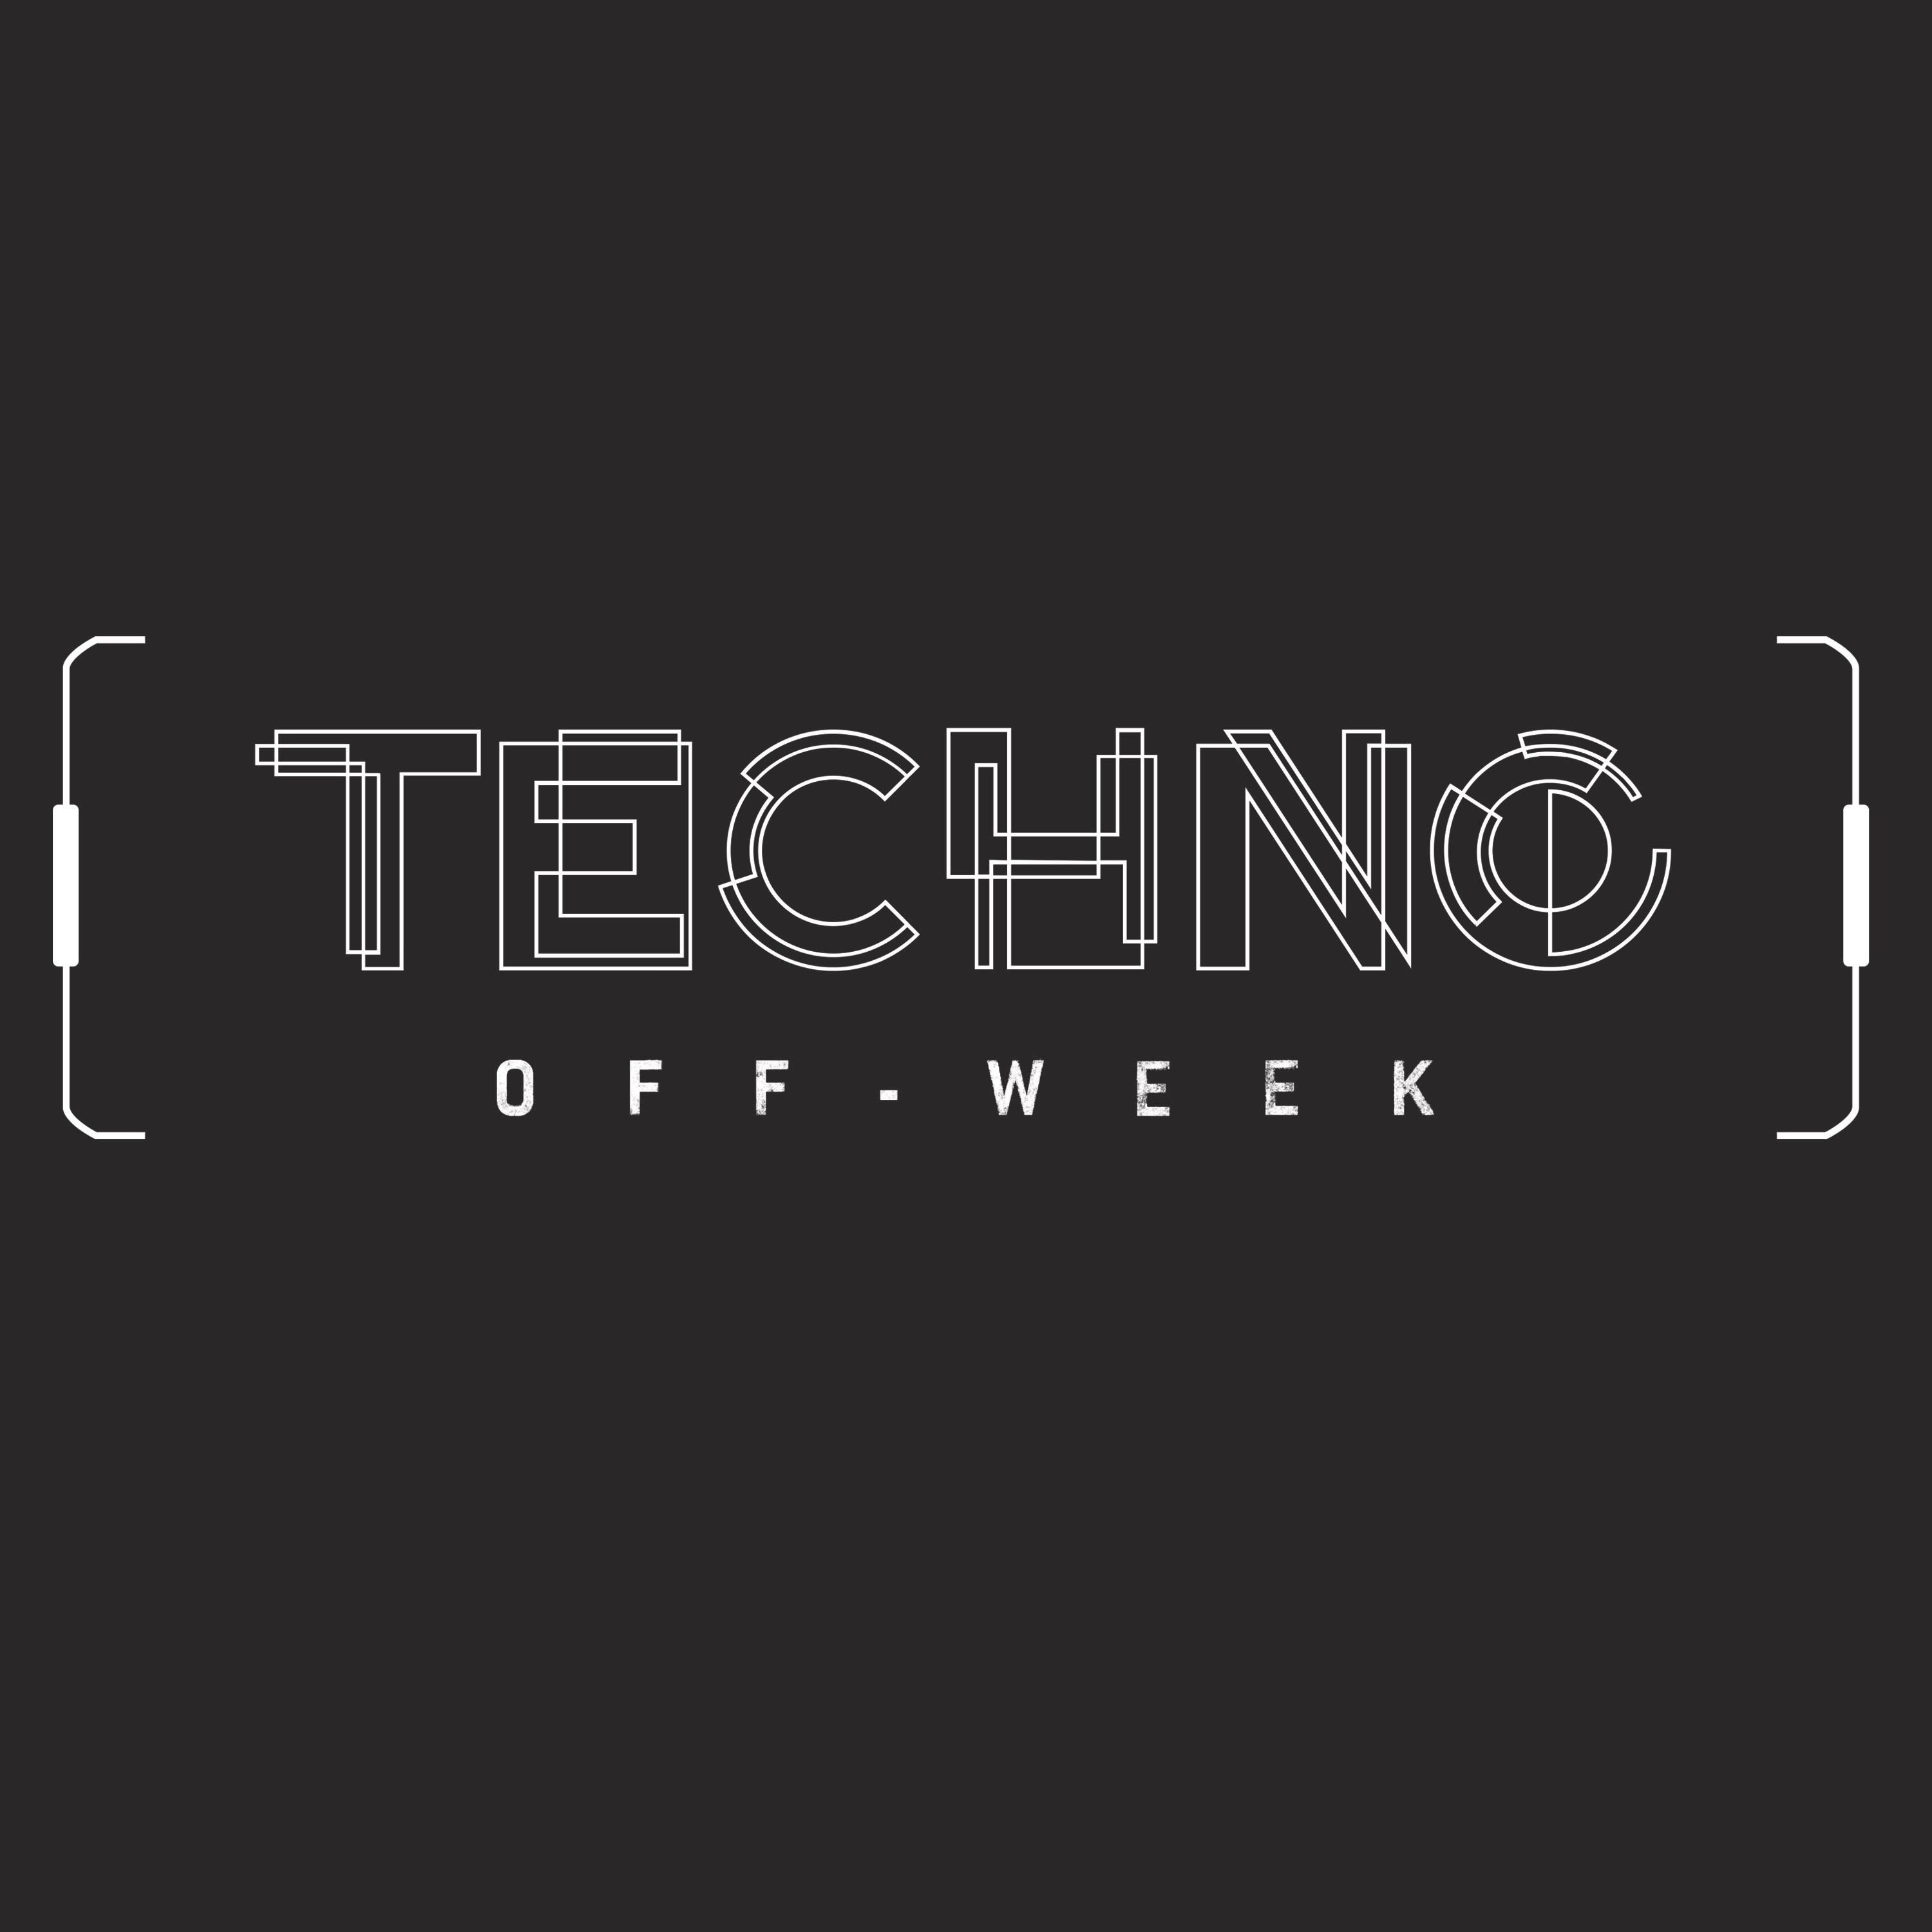 Amazing Techno Pictures & Backgrounds